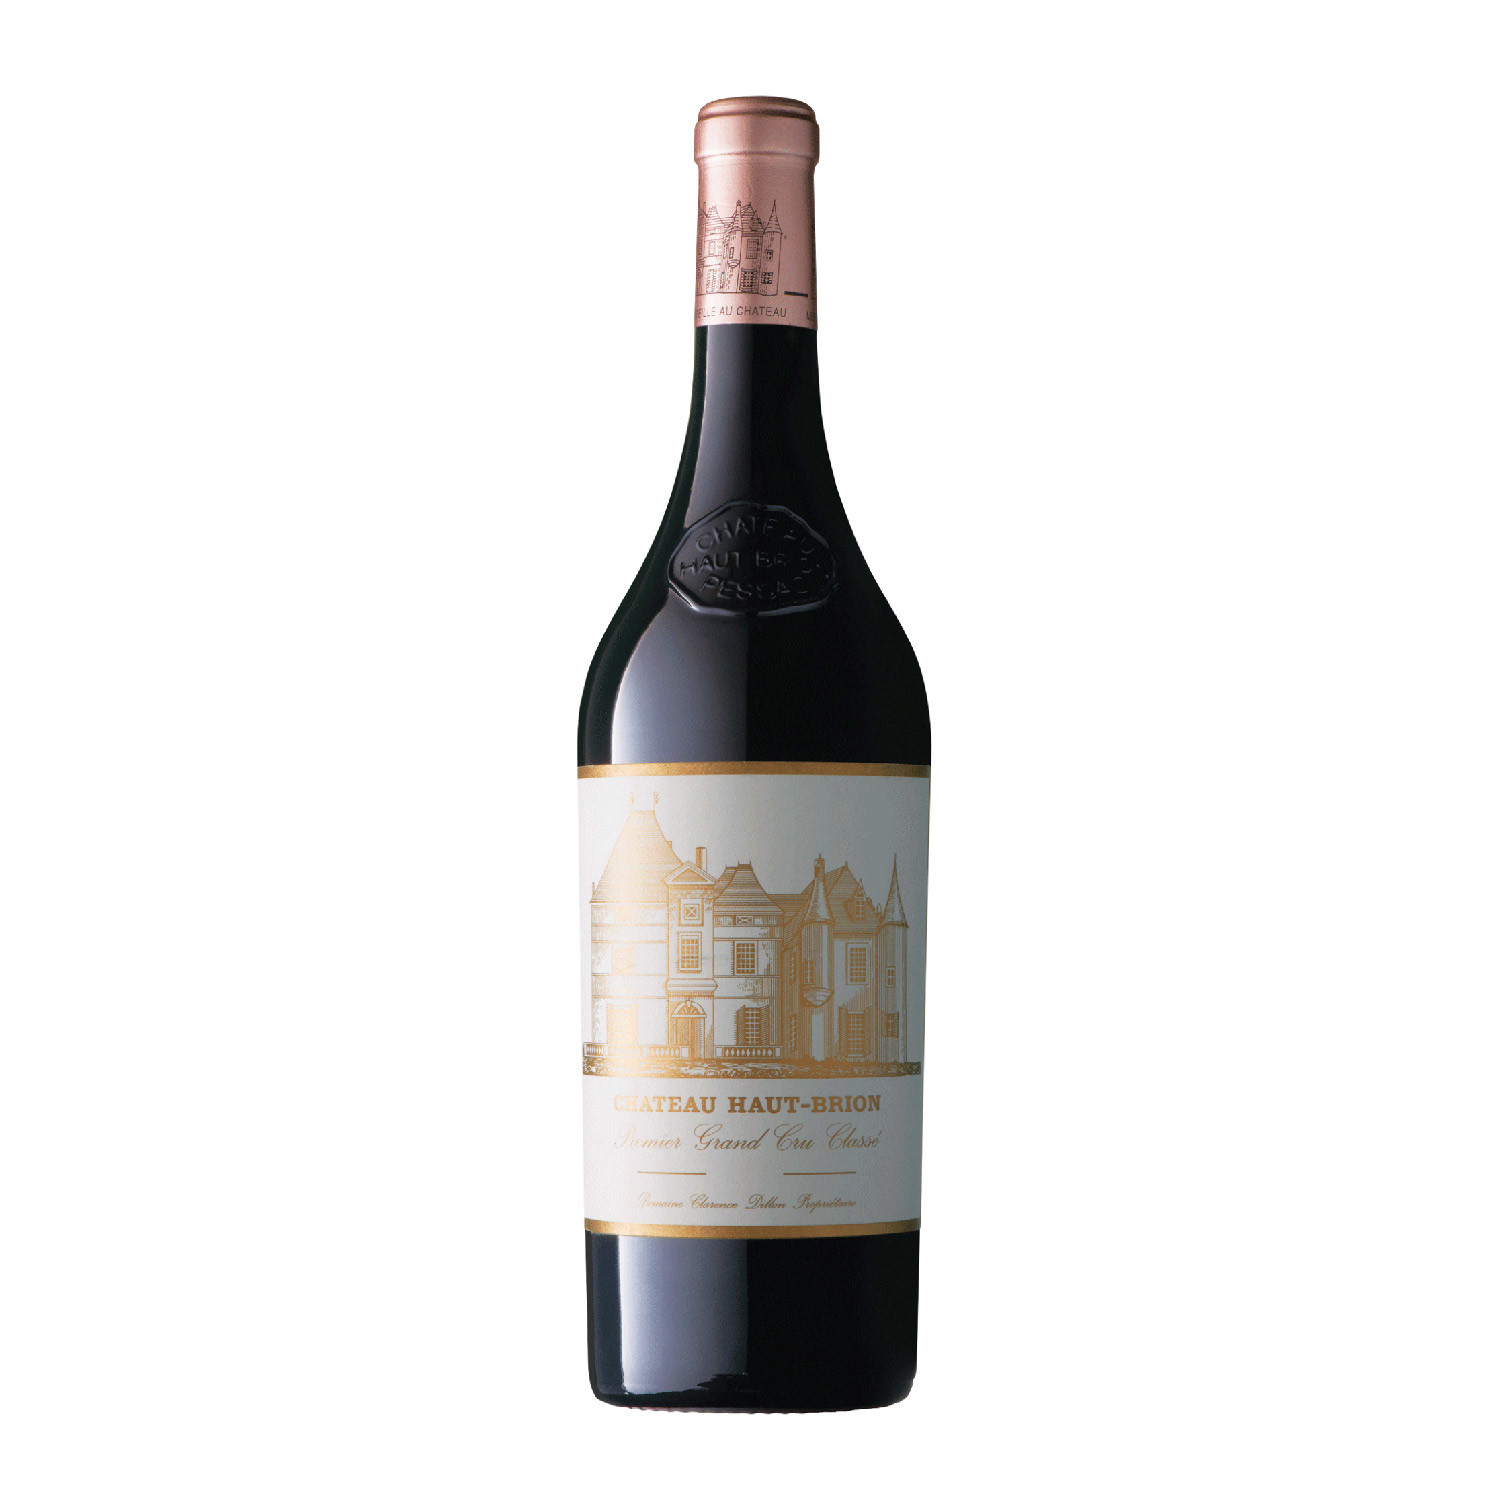 100pt bordeaux wine collection from 2010 vintage      set of